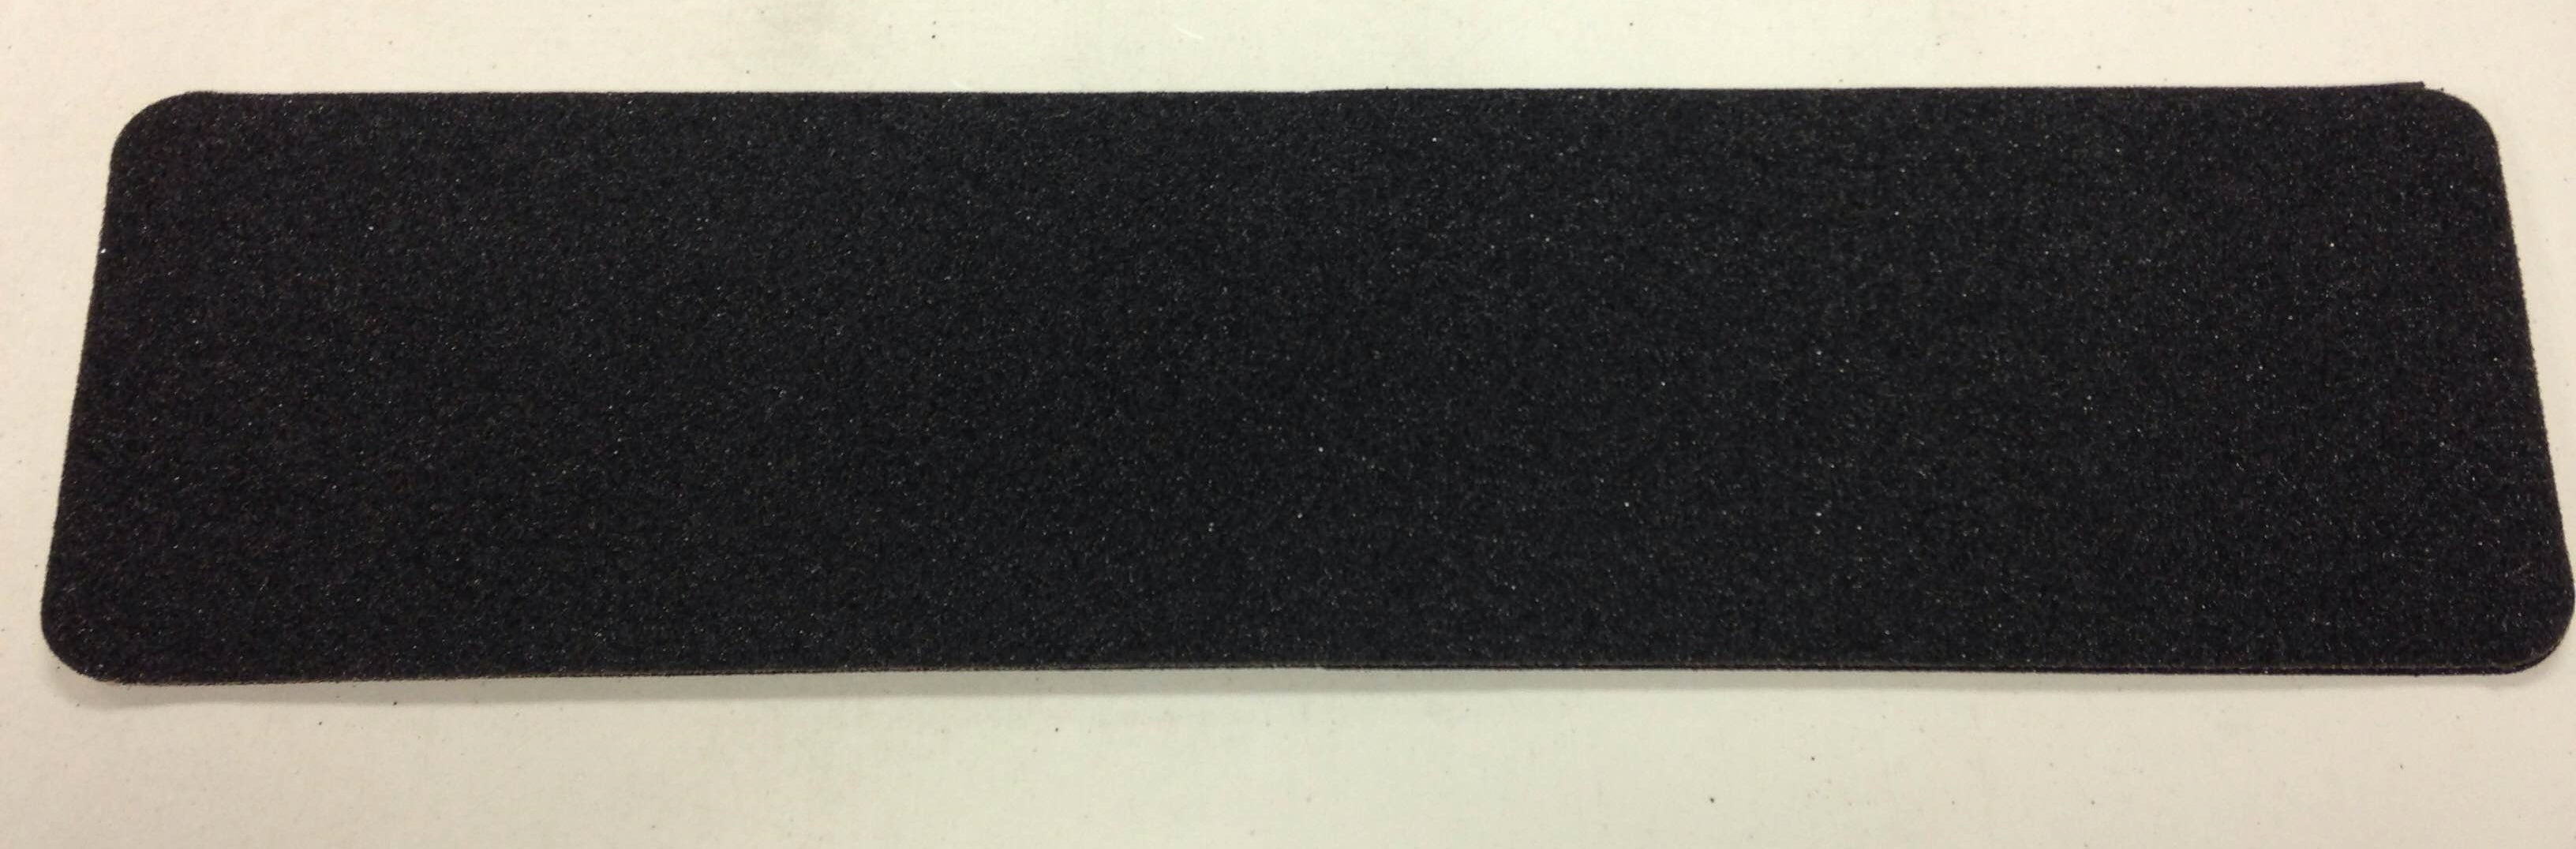 Black 30/60 Medium Grit Tape - Multiple Sizes/Options